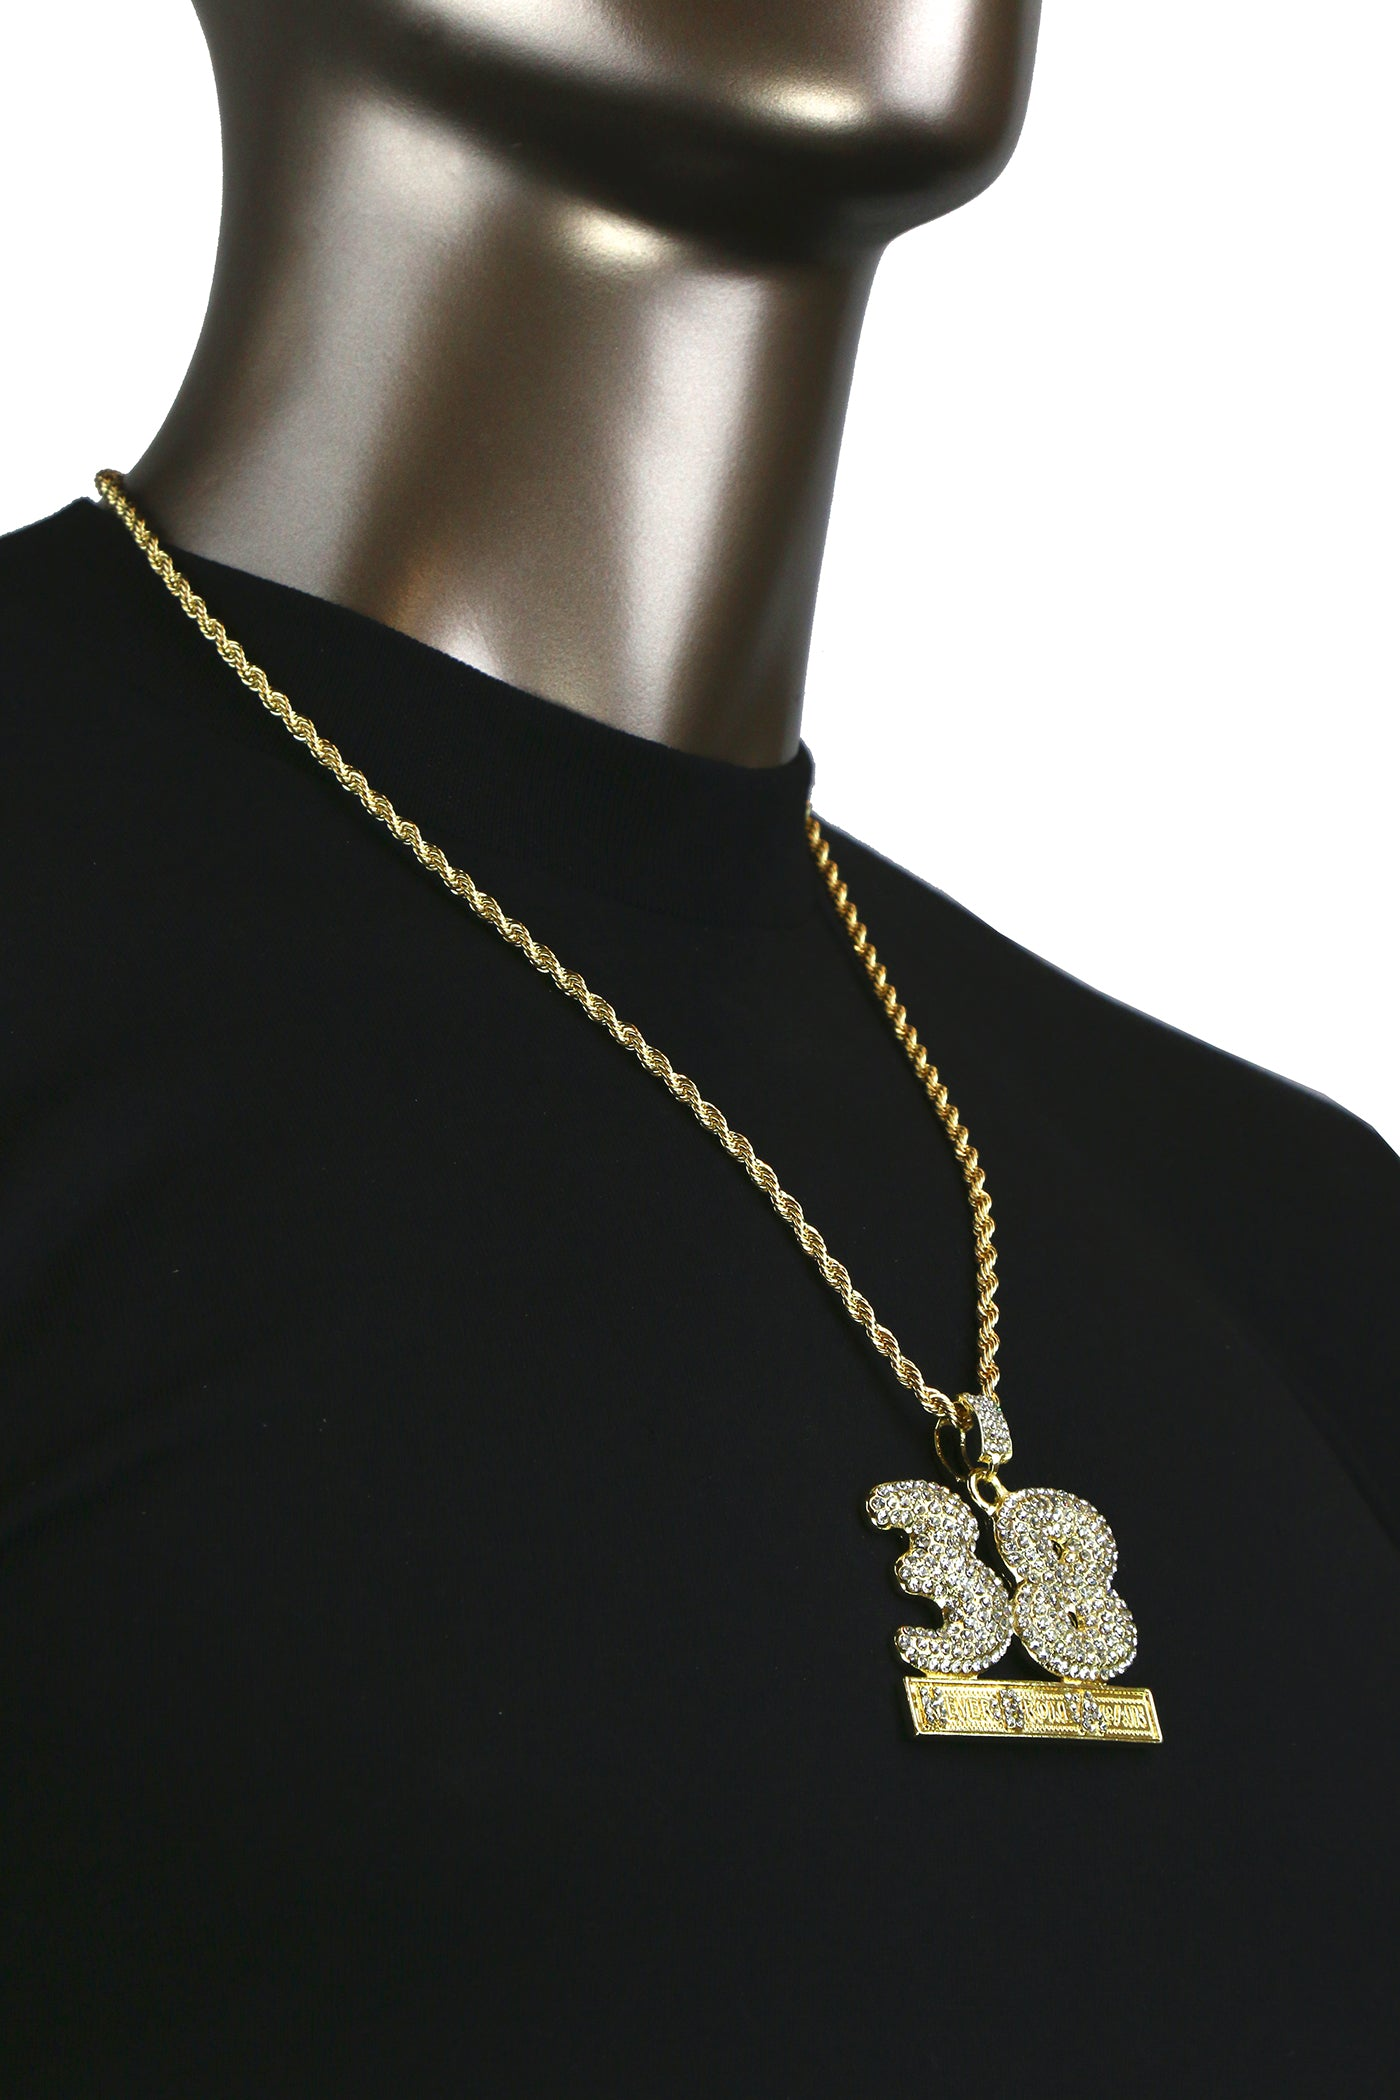 38 PENDANT WITH GOLD ROPE CHAIN